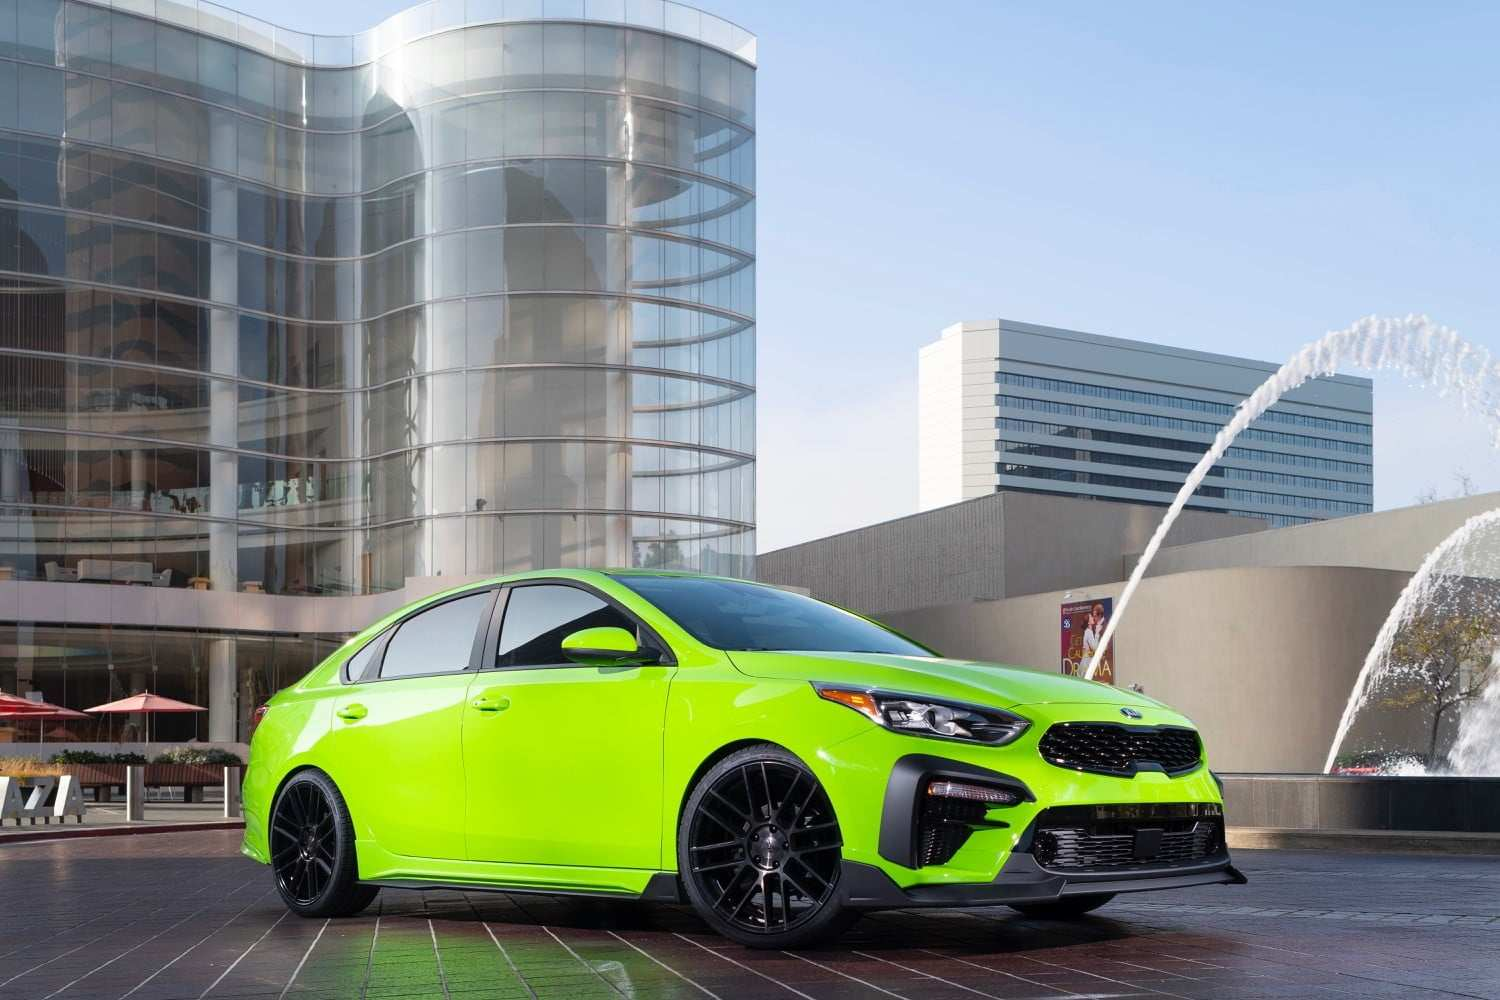 77 Great Kia Koup 2020 Review for Kia Koup 2020